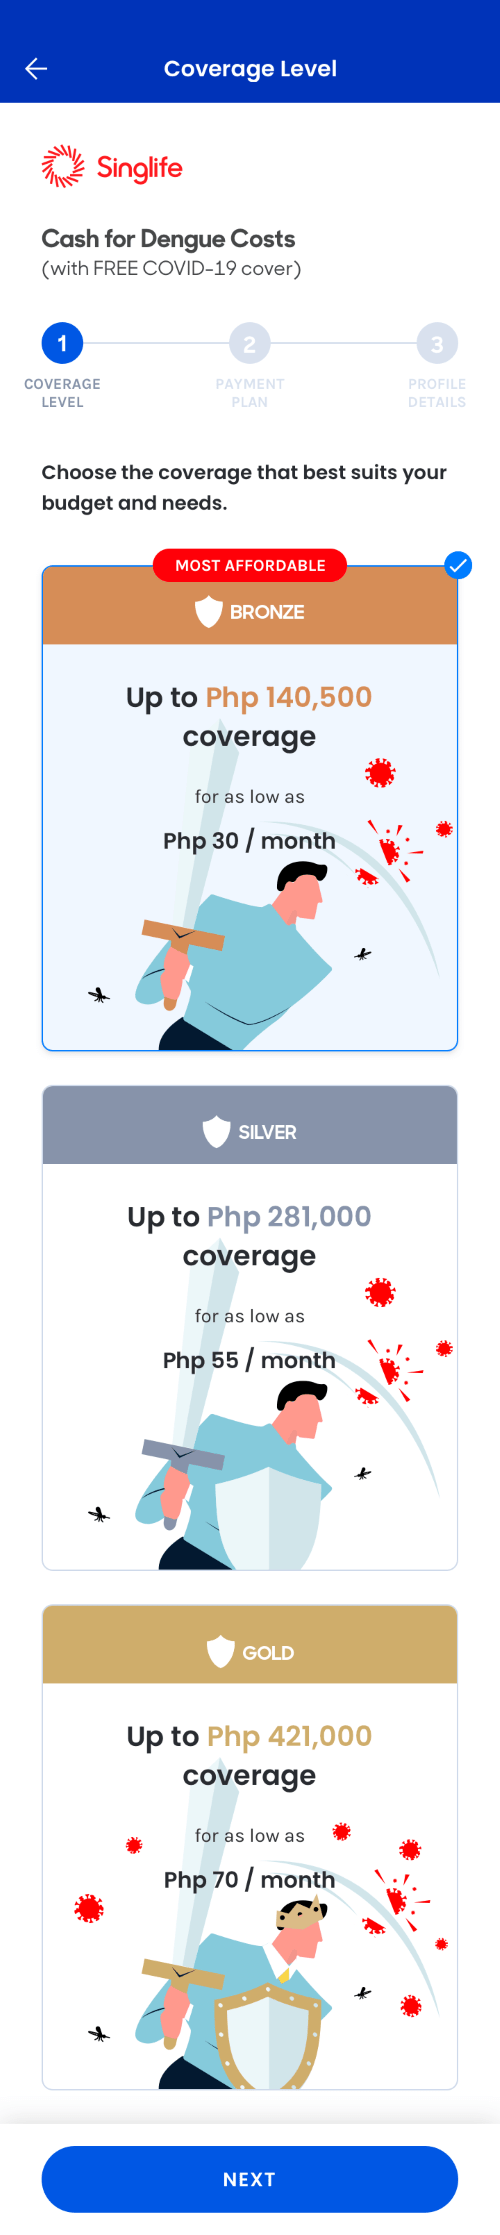 Singlife GCash Cash for Dengue Costs  Coverage Level